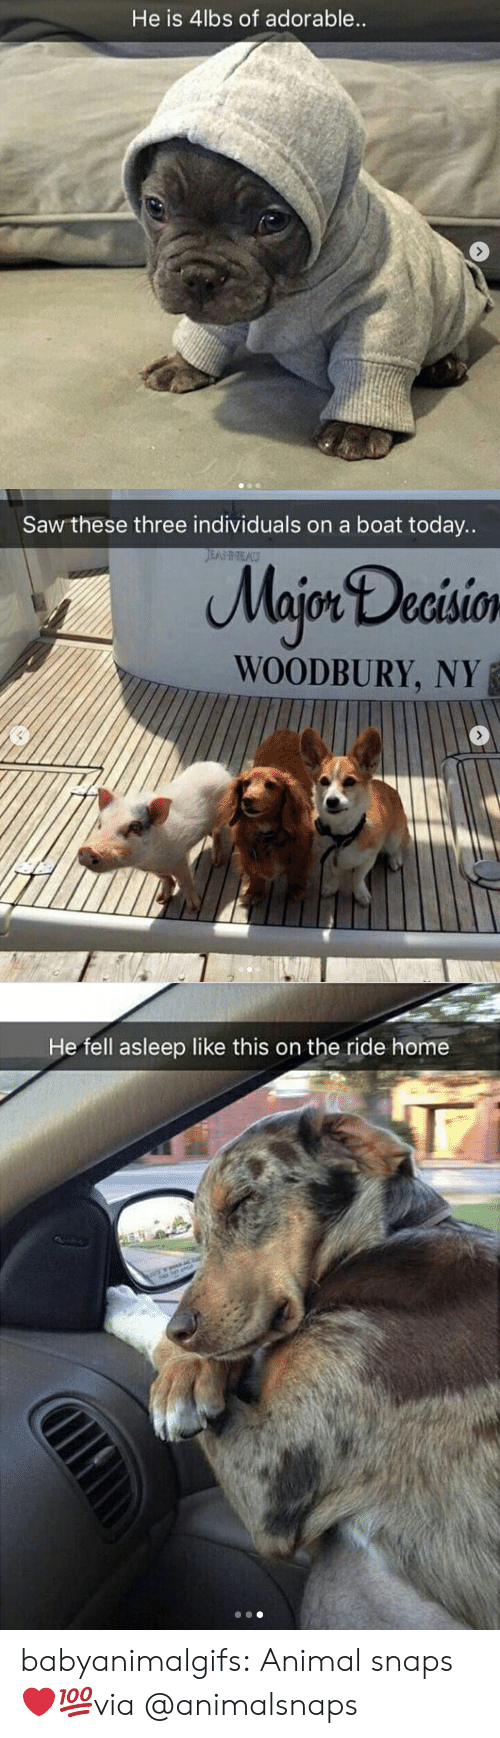 ride: He is 4lbs of adorable   Saw these three individuals on a boat today..  Majon Decisio  WOODBURY, NY   He fell asleep like this on the ride home babyanimalgifs:  Animal snaps ❤💯via @animalsnaps